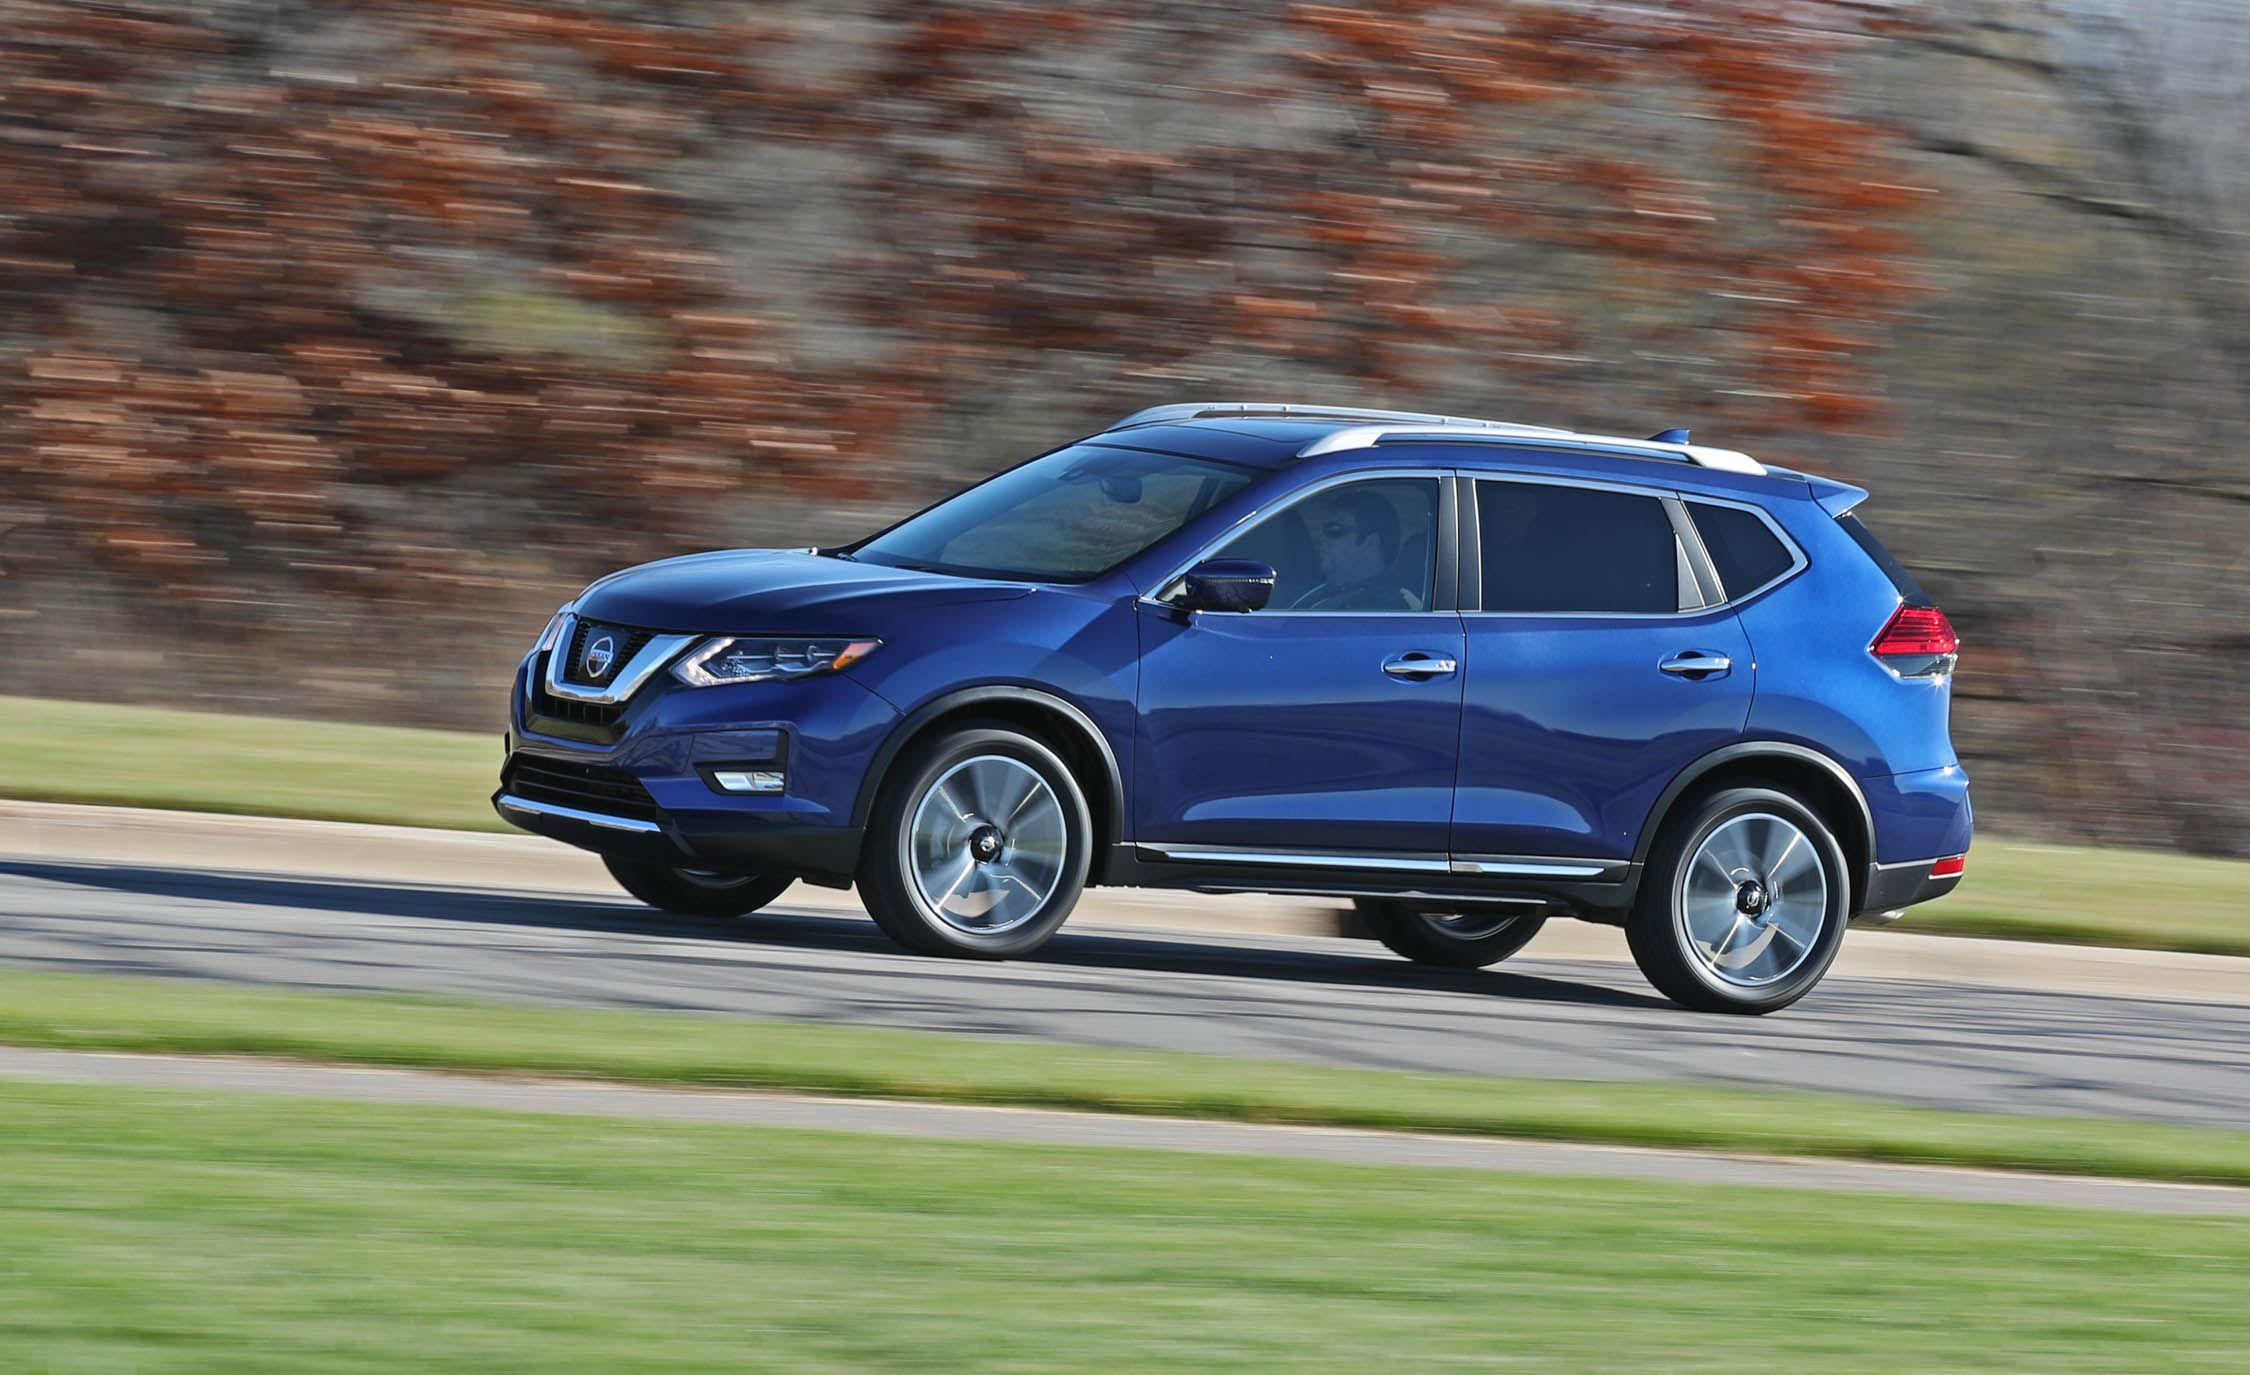 2019 Nissan Rogue Reviews   Nissan Rogue Price, Photos, and Specs   Car and  Driver